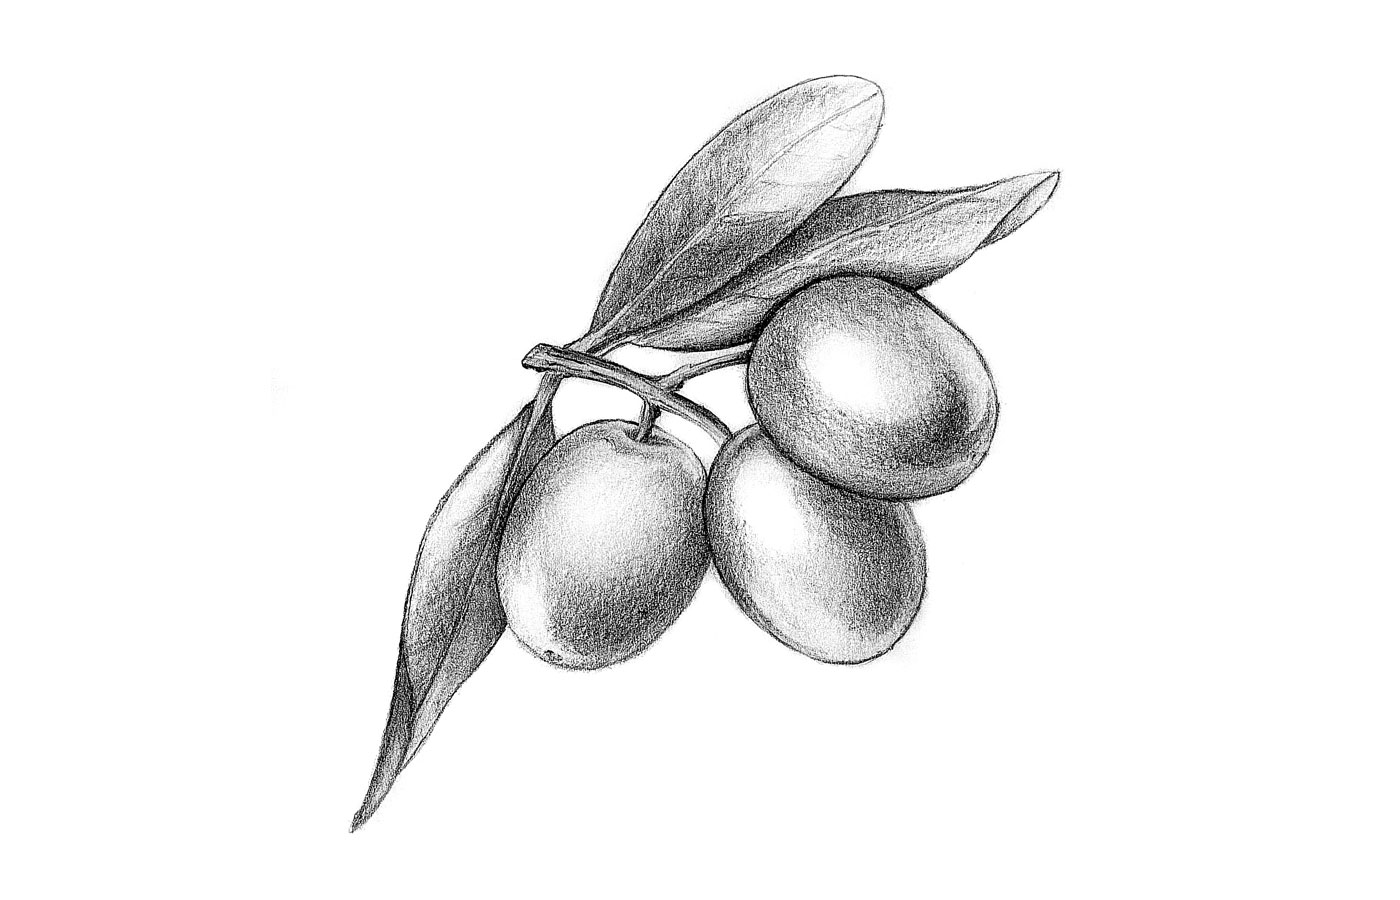 La Bottega illustration oliva